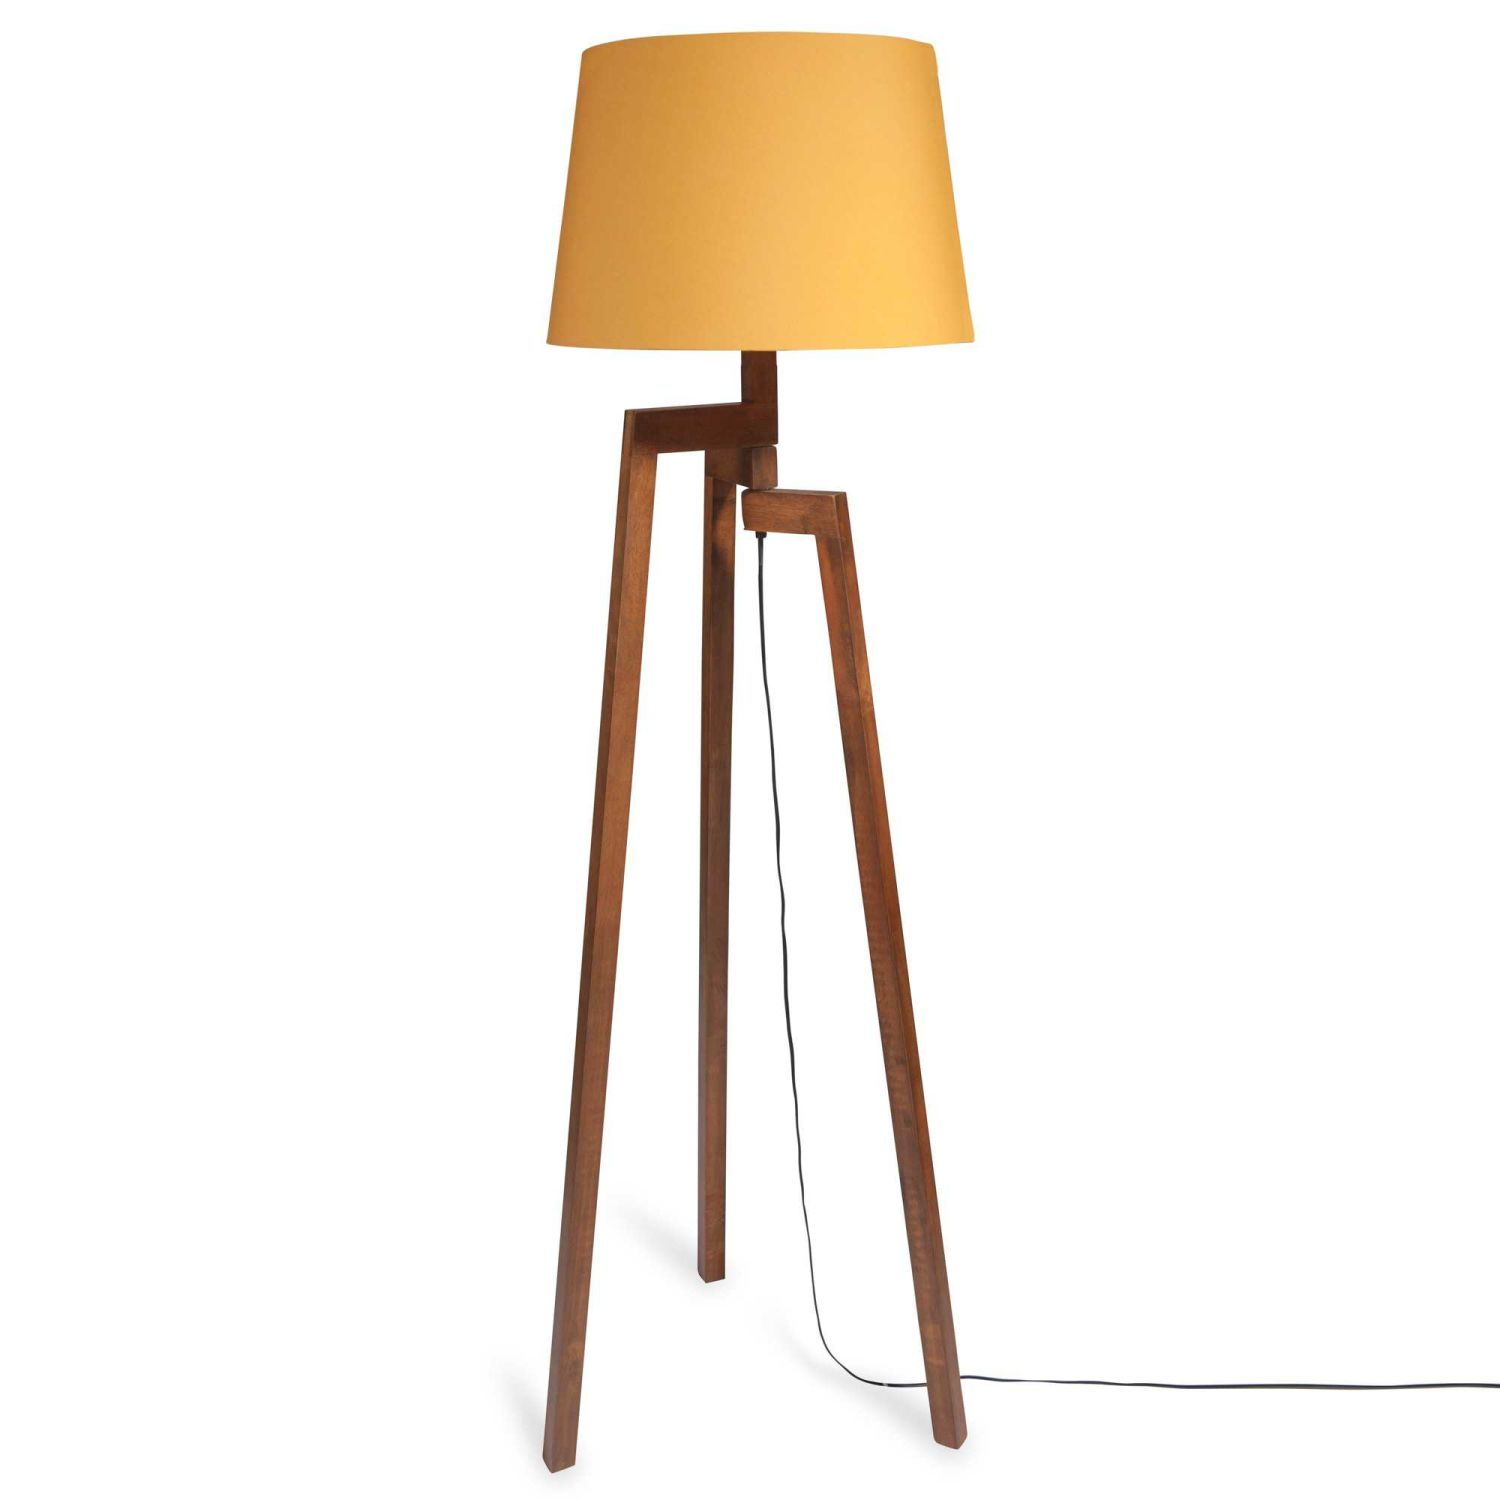 lampadaire tr pied en h v a et abat jour jaune moutarde h150 maisons du monde. Black Bedroom Furniture Sets. Home Design Ideas